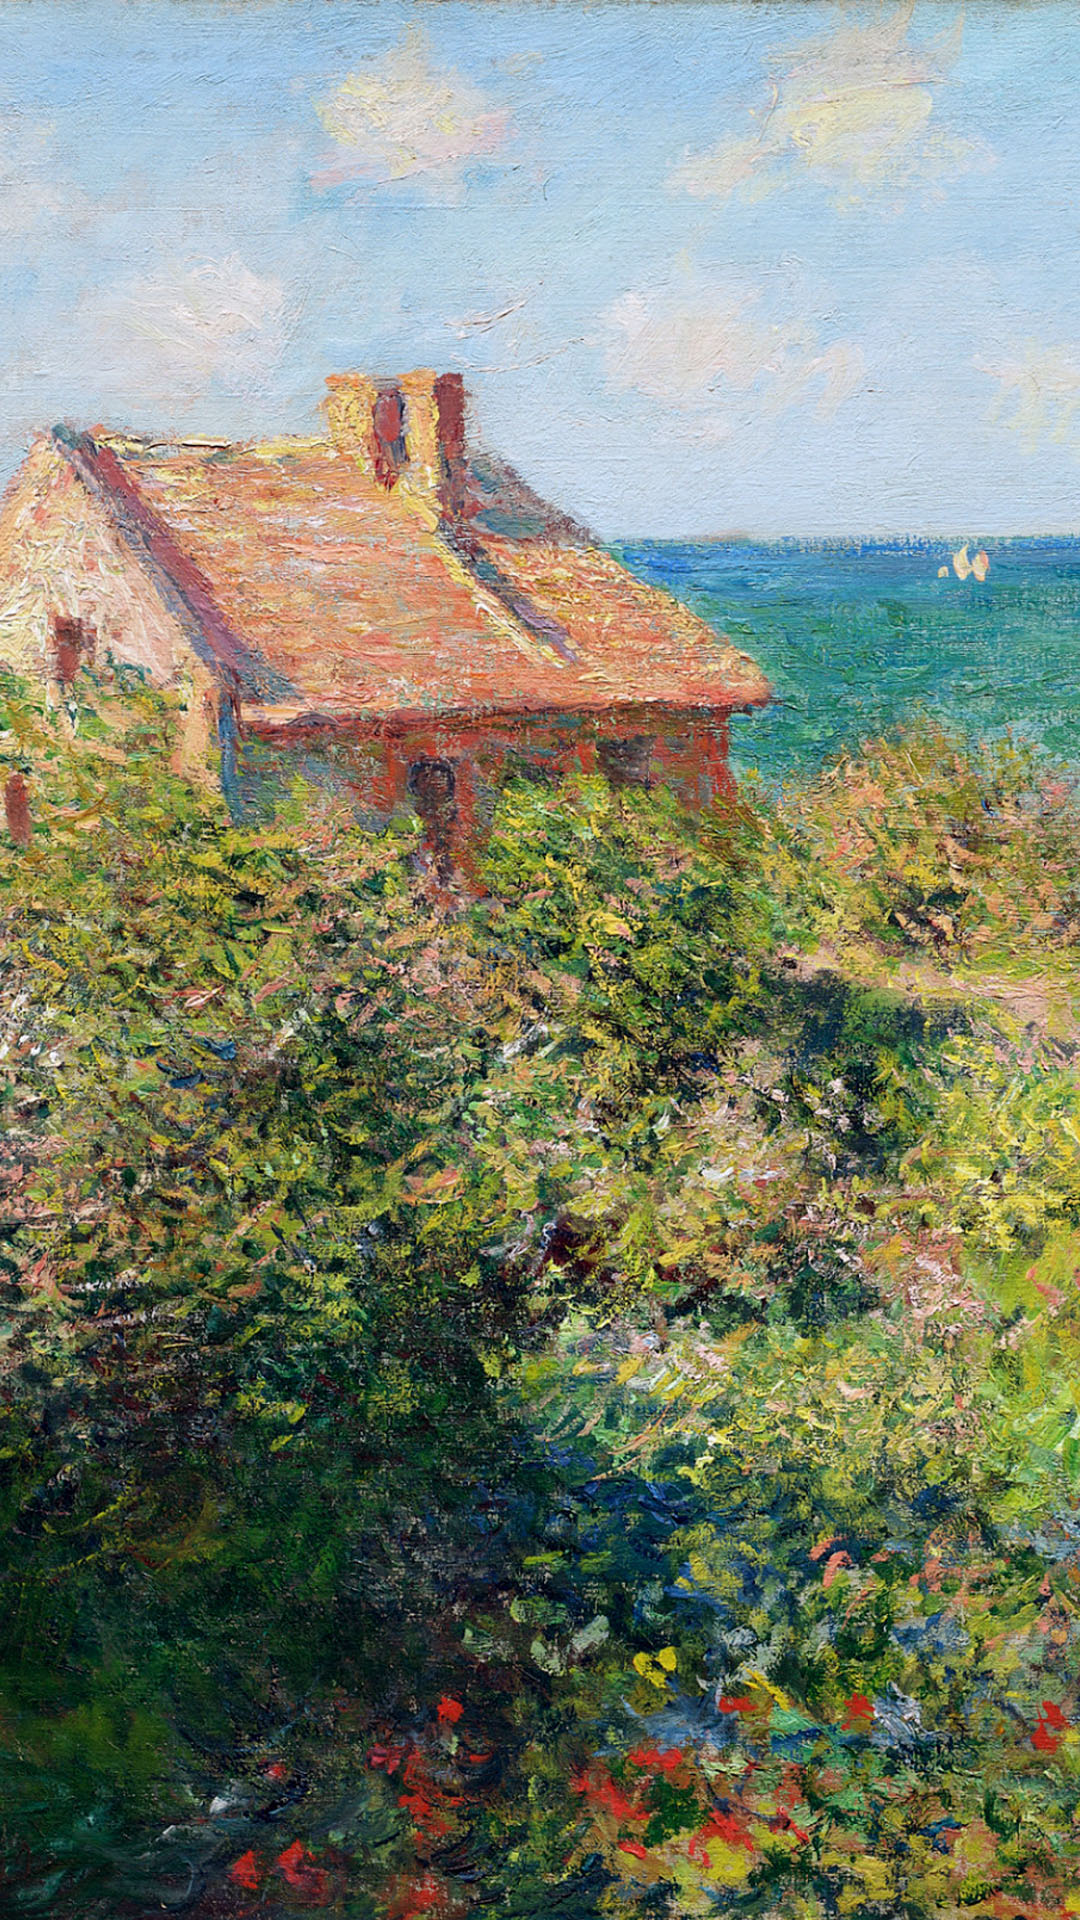 Claude Monet - Fisherman's Cottage at Varengeville 1080x1920